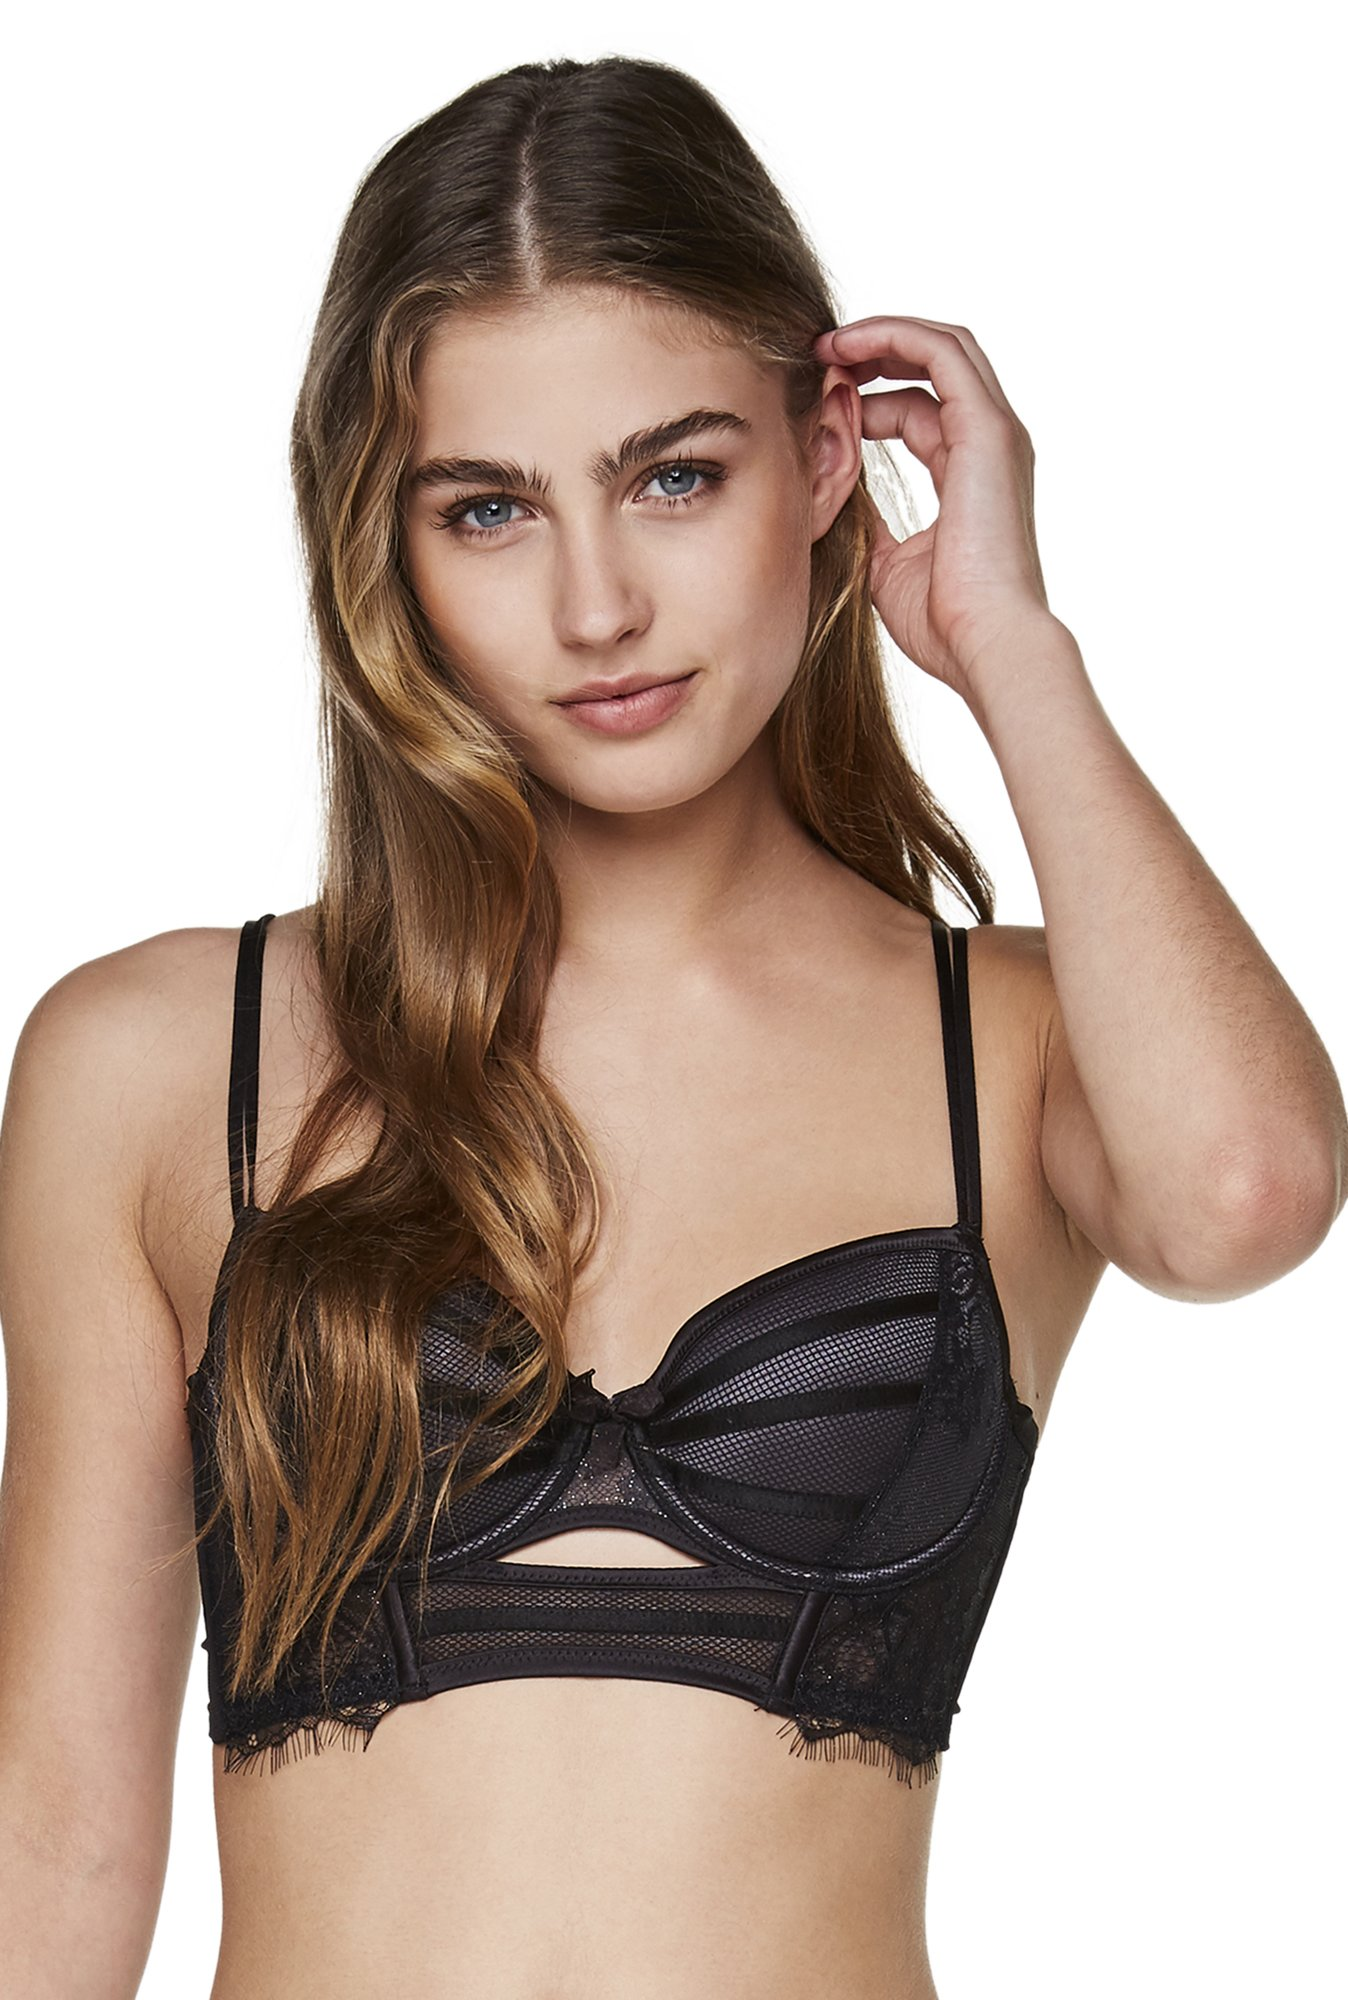 Hunkemoller Caviar Under Wired Padded Josie Balconette Bra